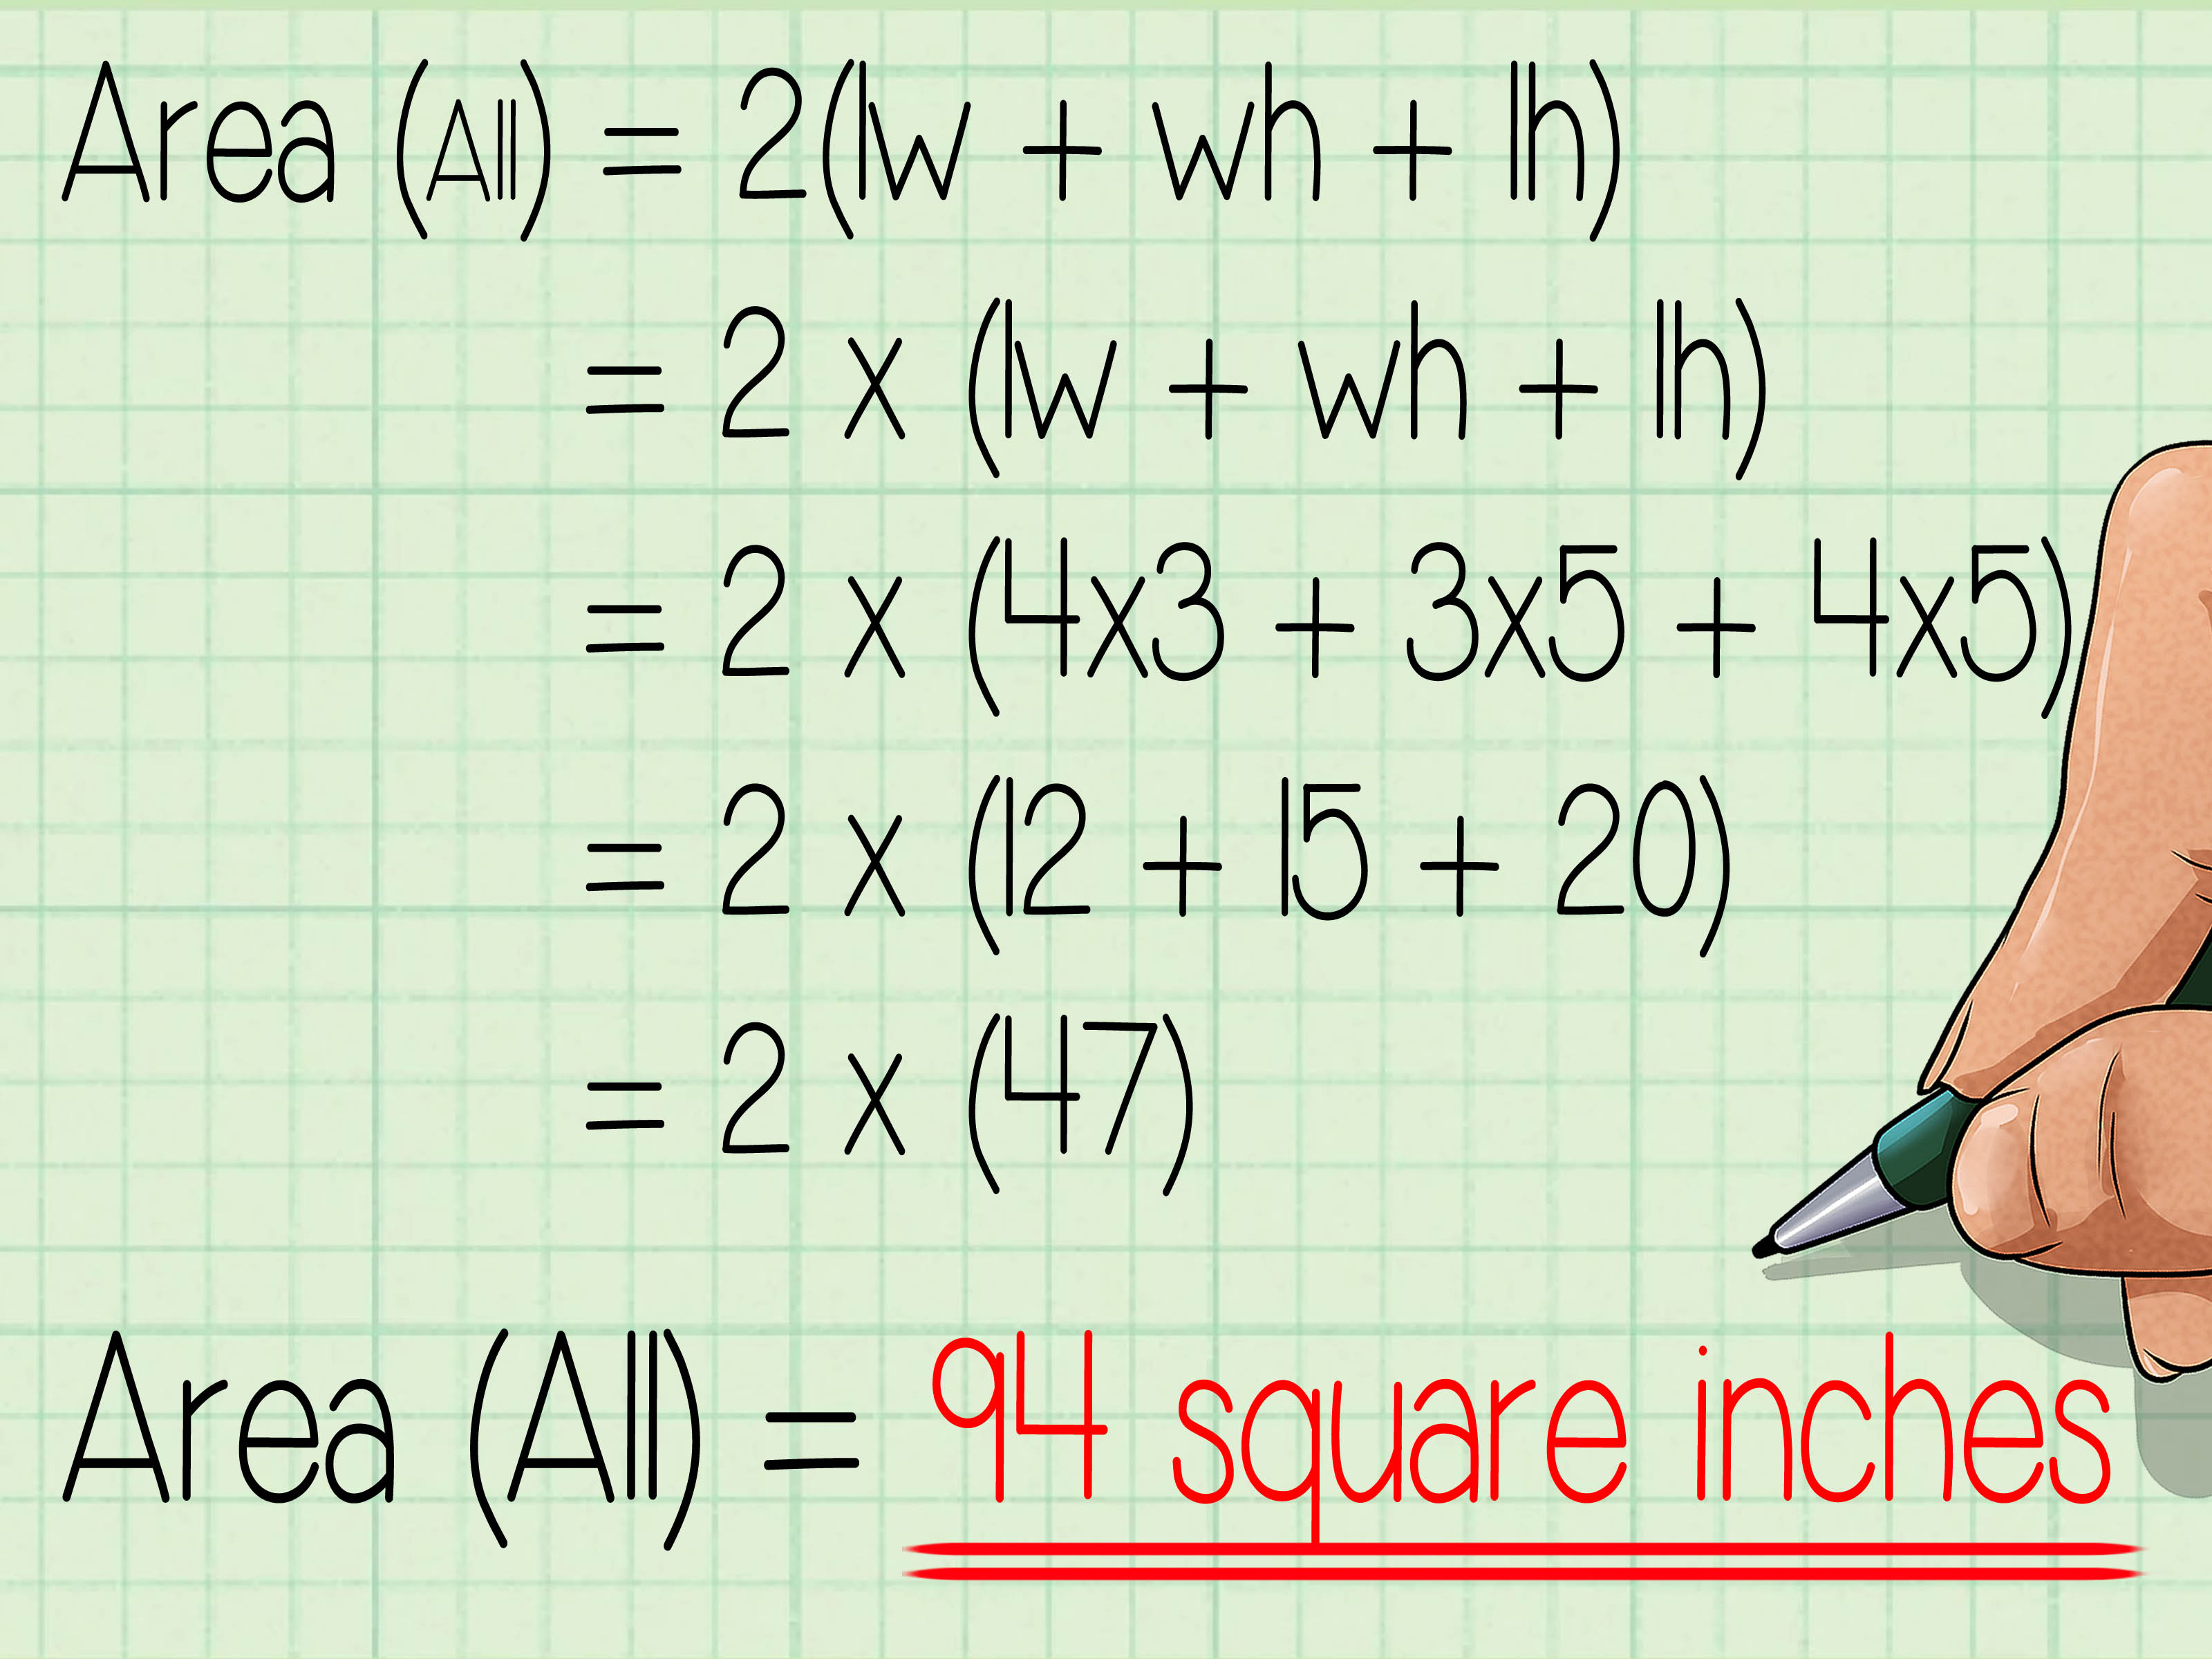 Worksheet On Volume And Surface Area Of Sphere